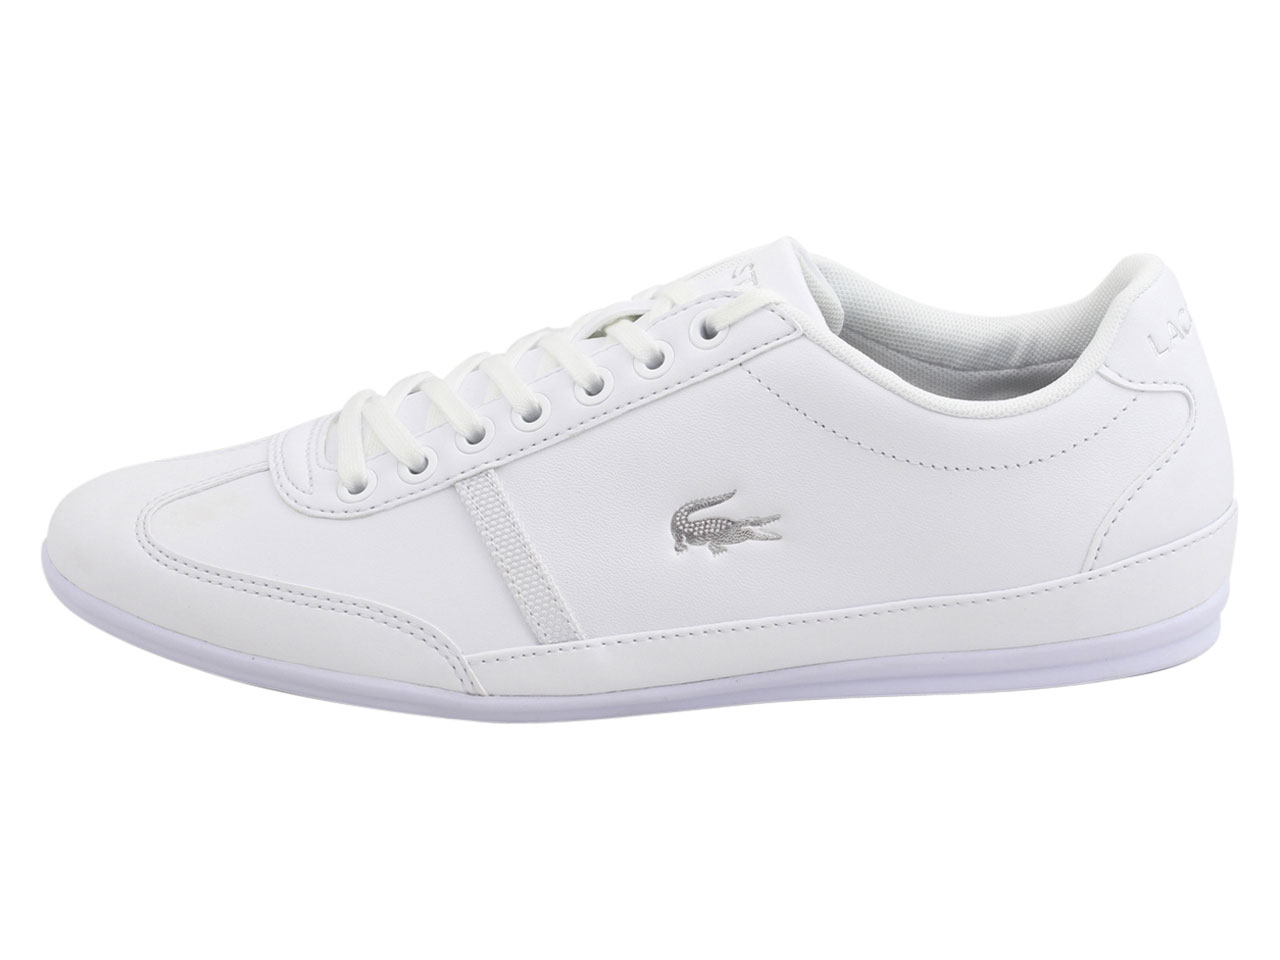 Lacoste-Men-039-s-Misano-Sport-118-Sneakers-Shoes thumbnail 21